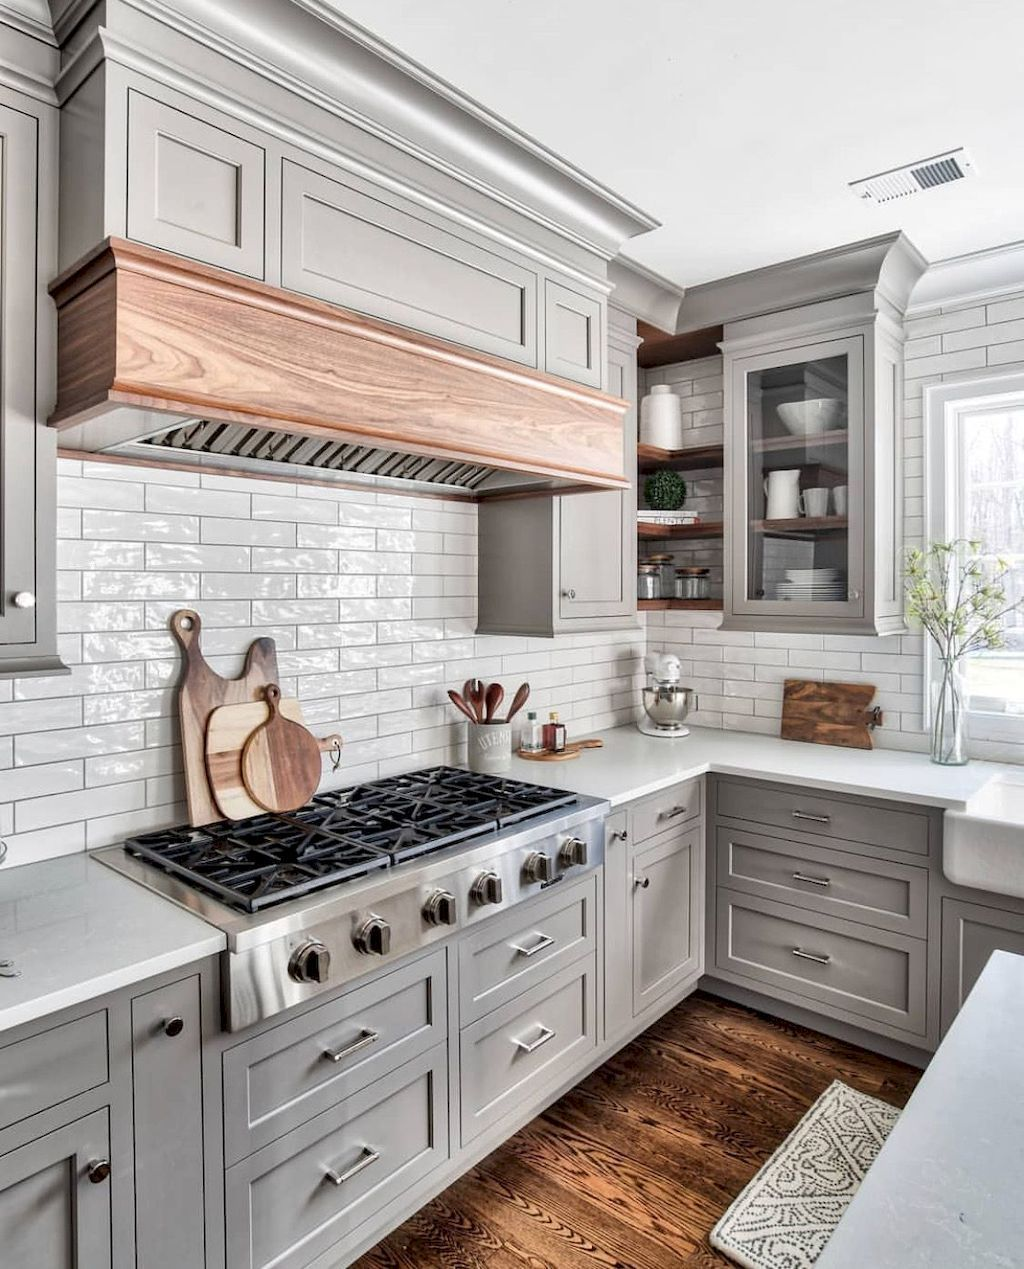 54 Awesome Gray Kitchen Cabinet Design Ideas Grey Kitchen Designs Kitchen Cabinet Design Kitchen Renovation